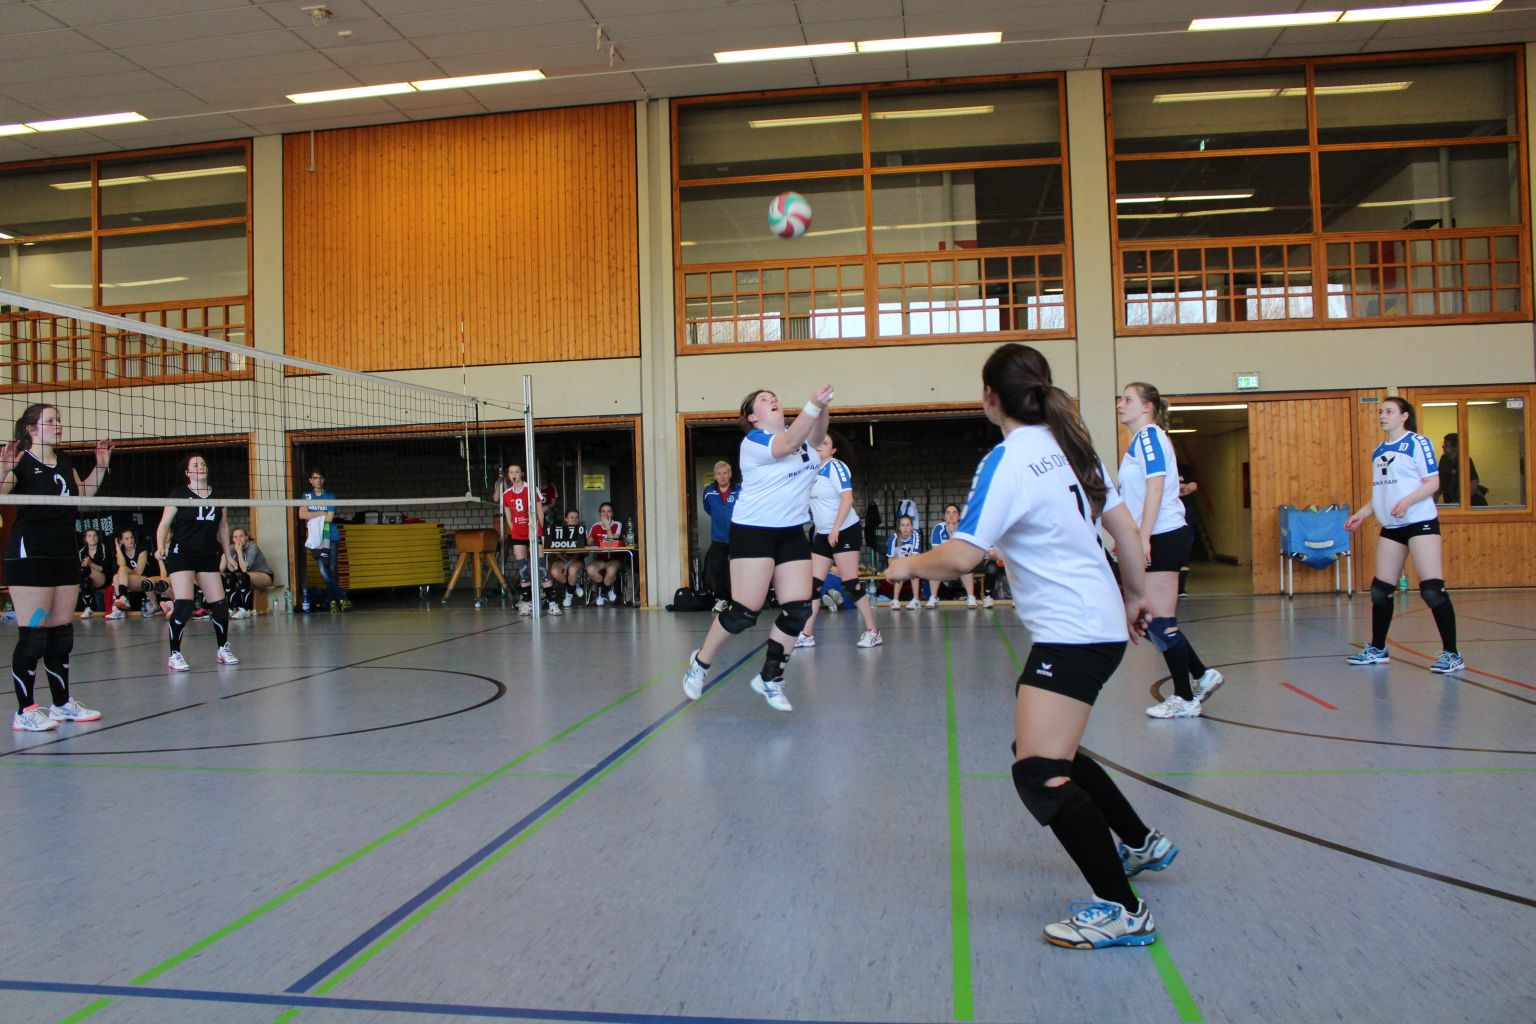 170325_Volleyball_IMG_4191